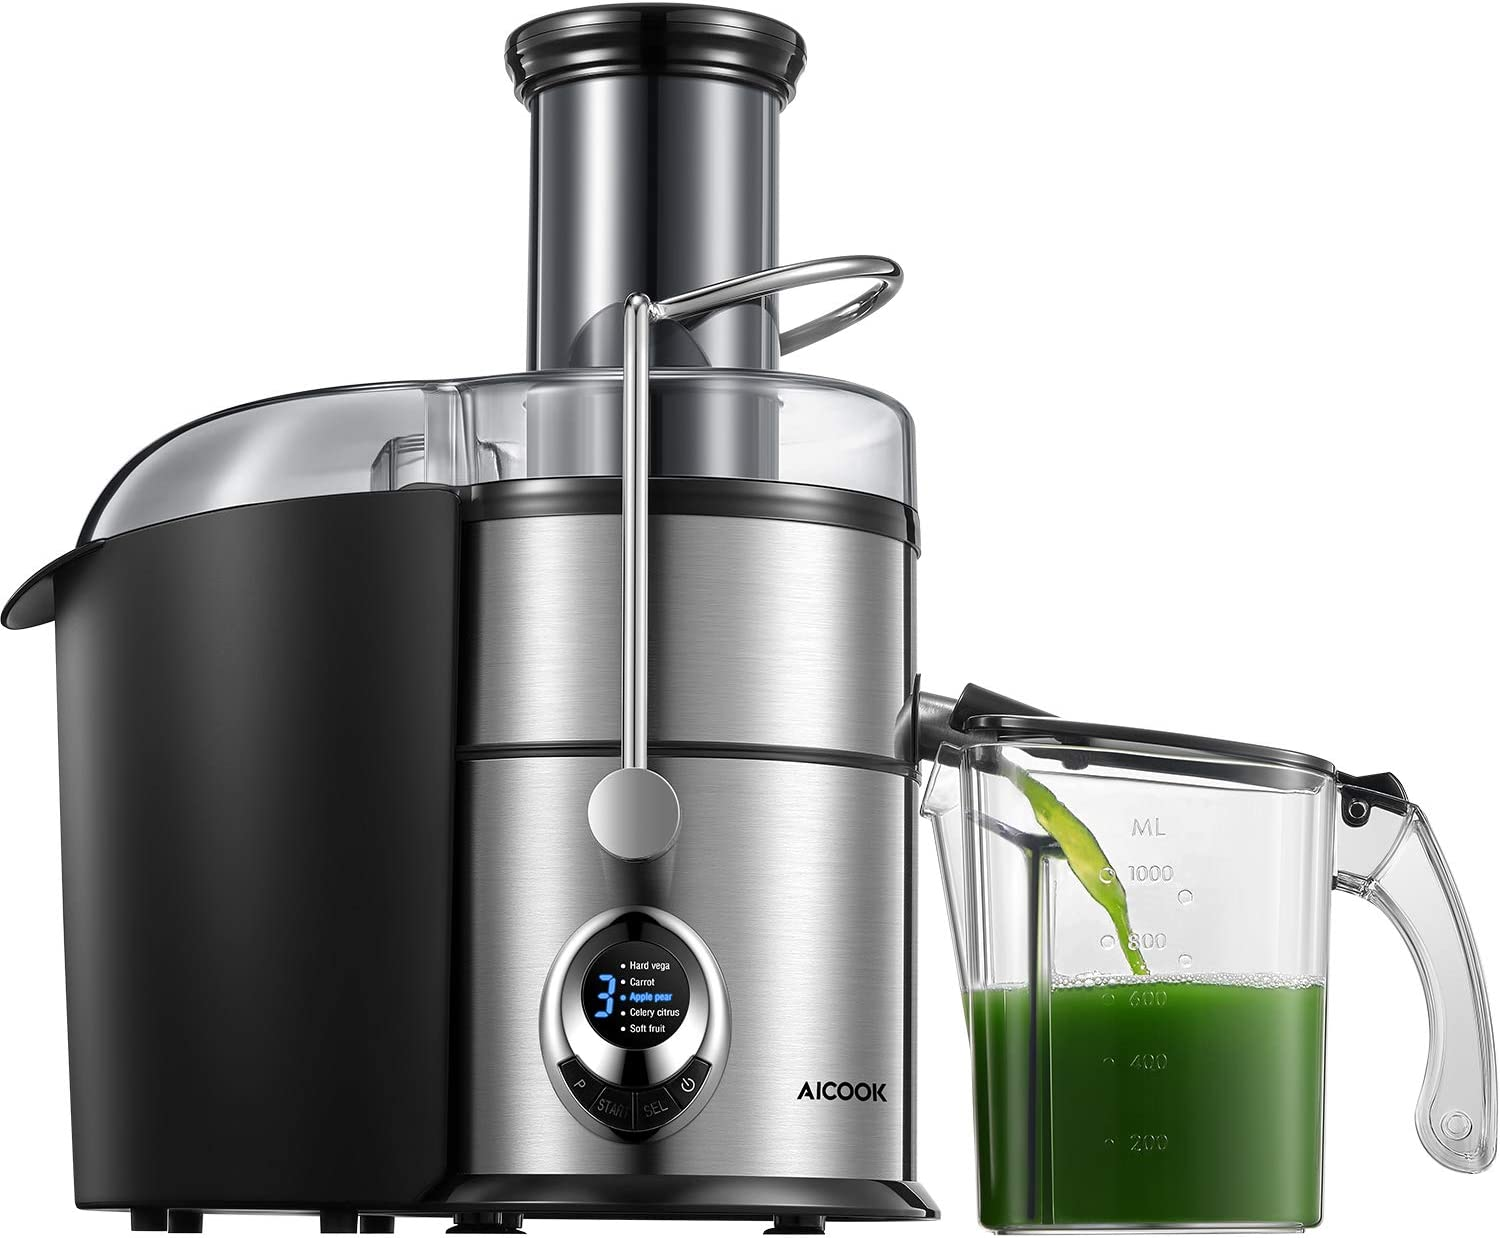 Juicer Machines, Aicook 800W Juice and Vegetable Extractor 5-Speed Touch Screen, 3.1'' Big Mouth Centrifugal Juicer, Easy to Clean, Quiet Motor, Non-Slip Feet, BPA-Free